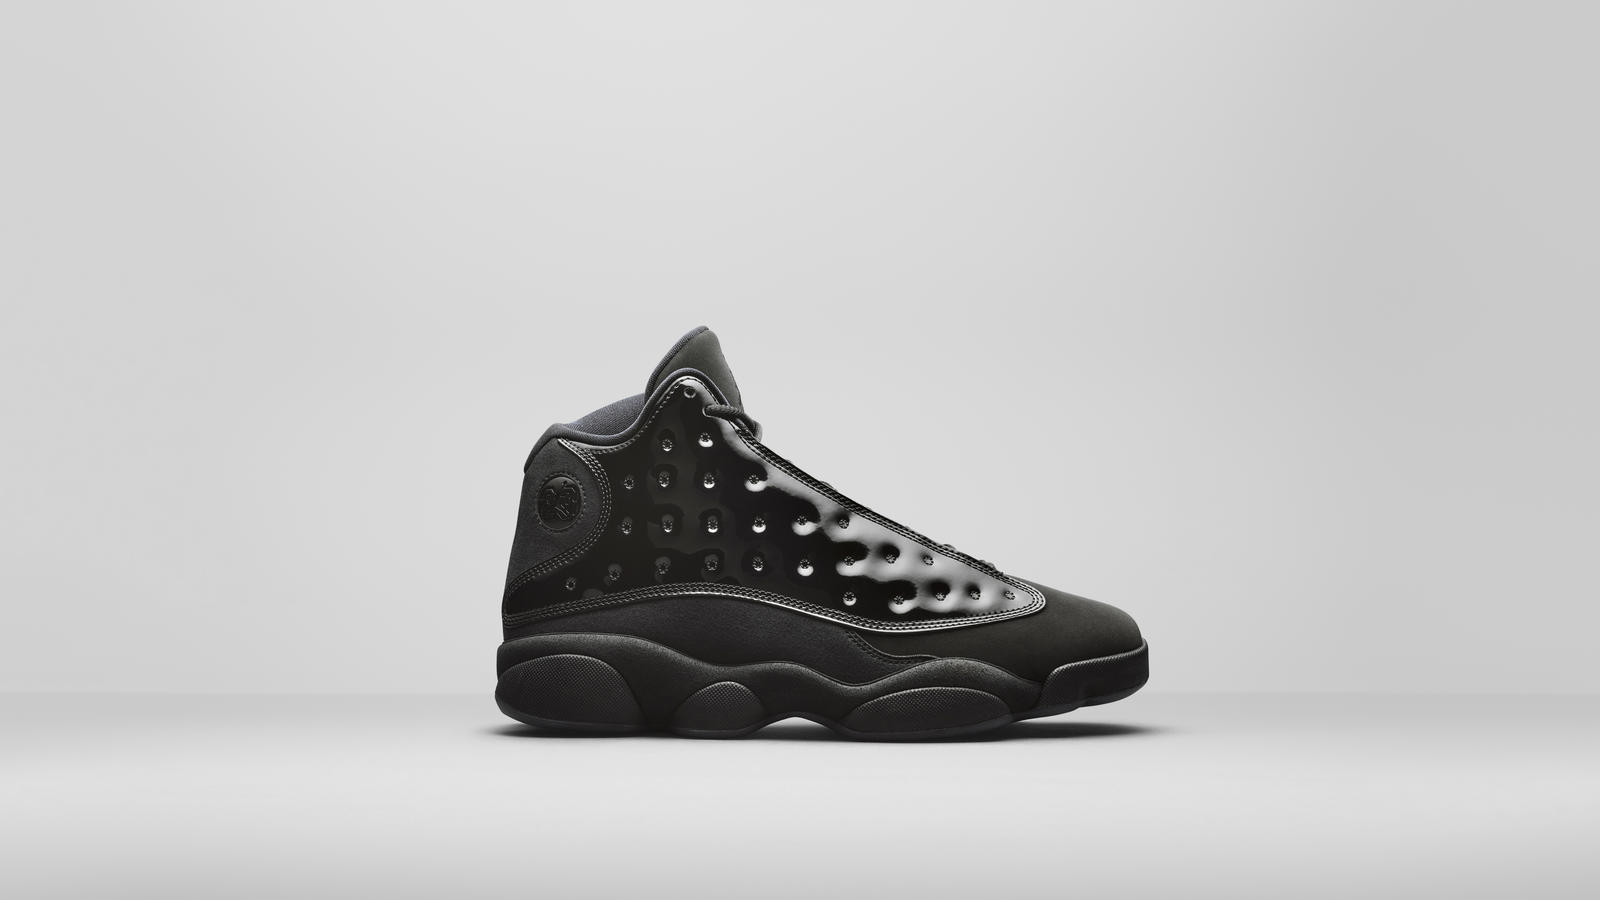 Air Jordan 13 Cap and Gown, Air Jordan 7 Ray Allen, Air Jordan 14, Air Jordan Flyknit Official Release Date and Images 0